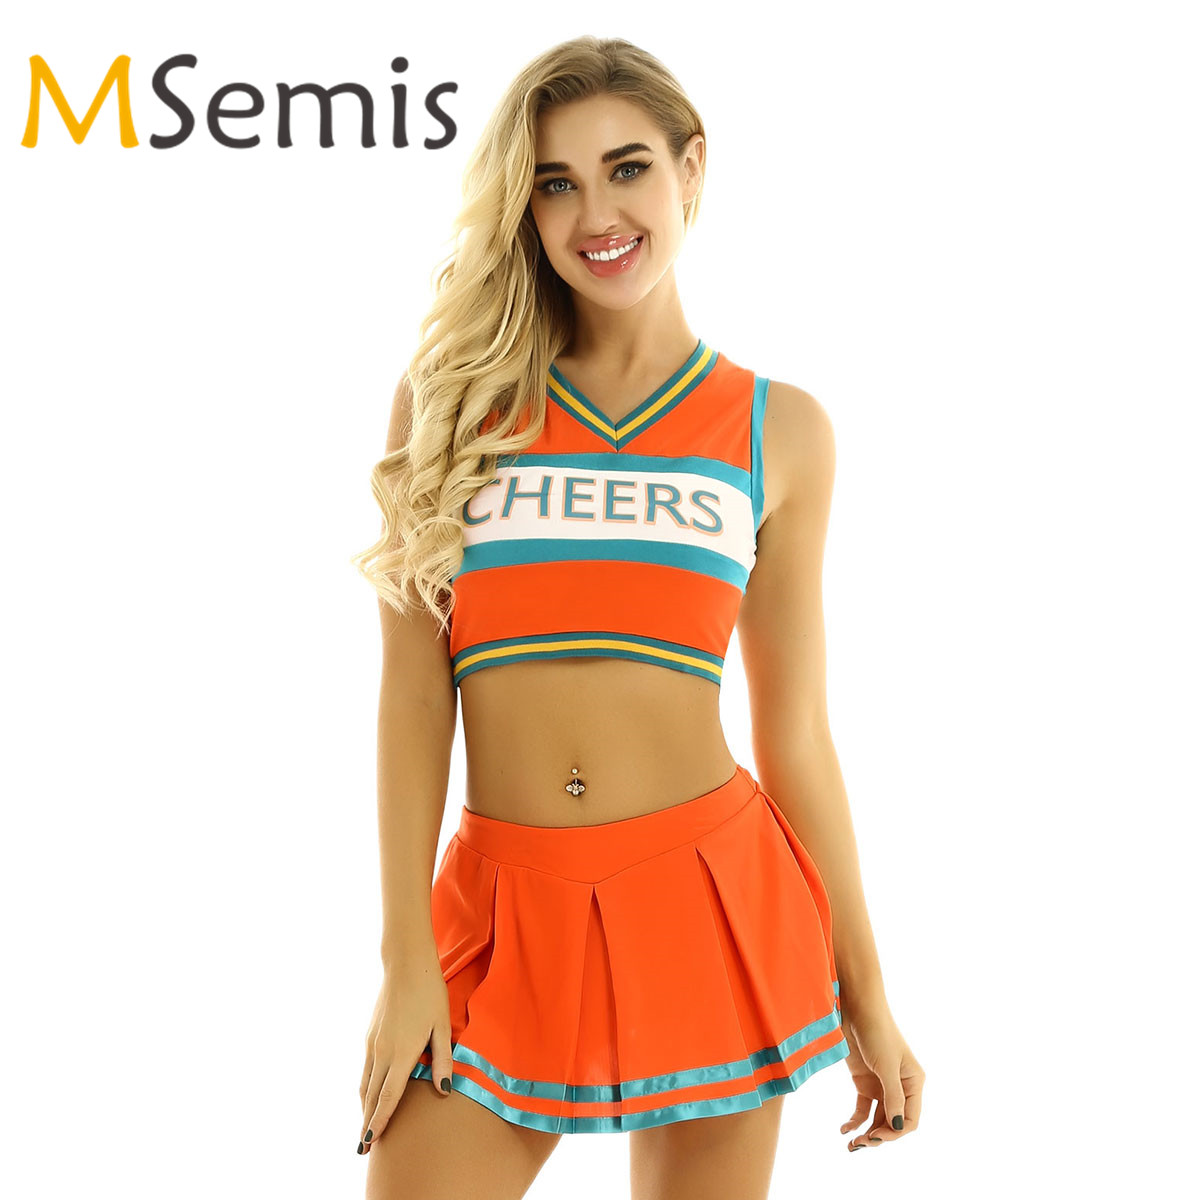 Womens Cheerleading Sports Uniform Cheerleader Costume Cosplay Outfit Sleeveless Crop Top With Mini Pleated Skirt For Dancing